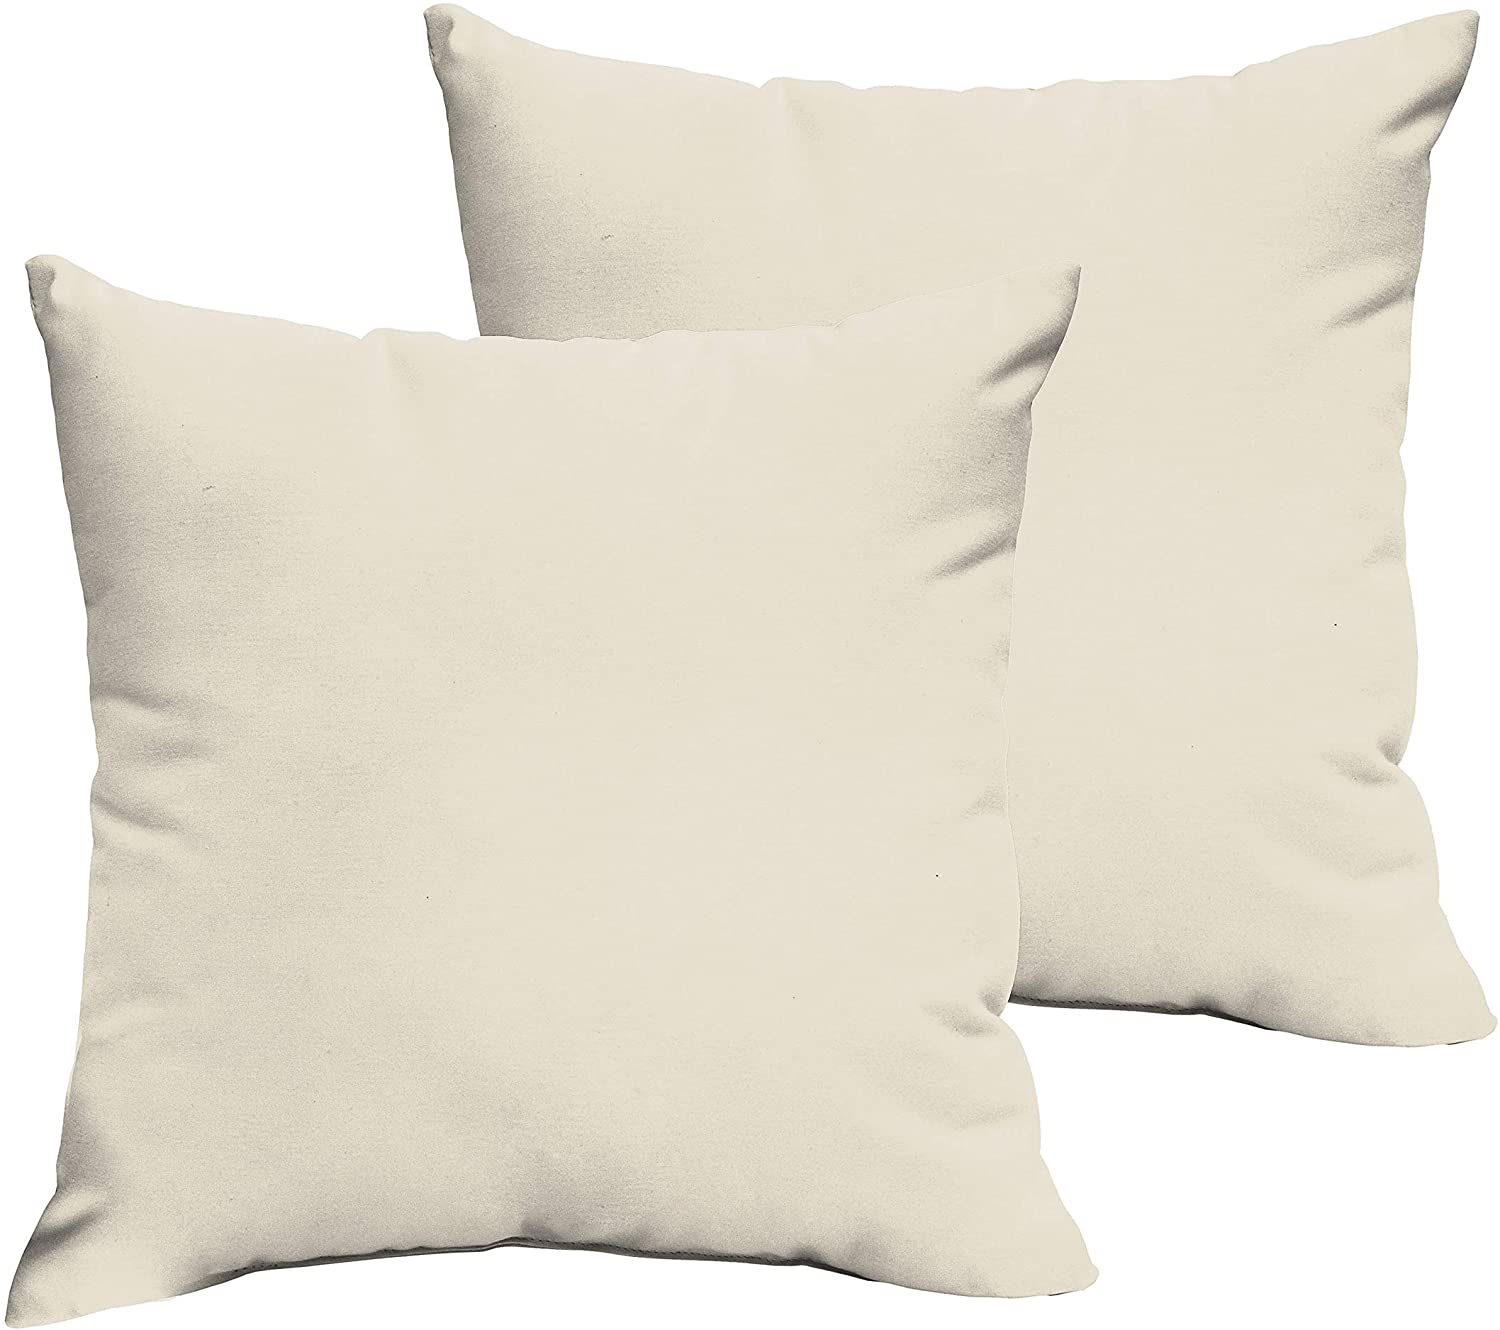 Ivory 22 X 22 inch Indoor/Outdoor Knife Edge Pillow Set White Solid Modern Contemporary Traditional Transitional Polyester Fade Resistant Uv Water